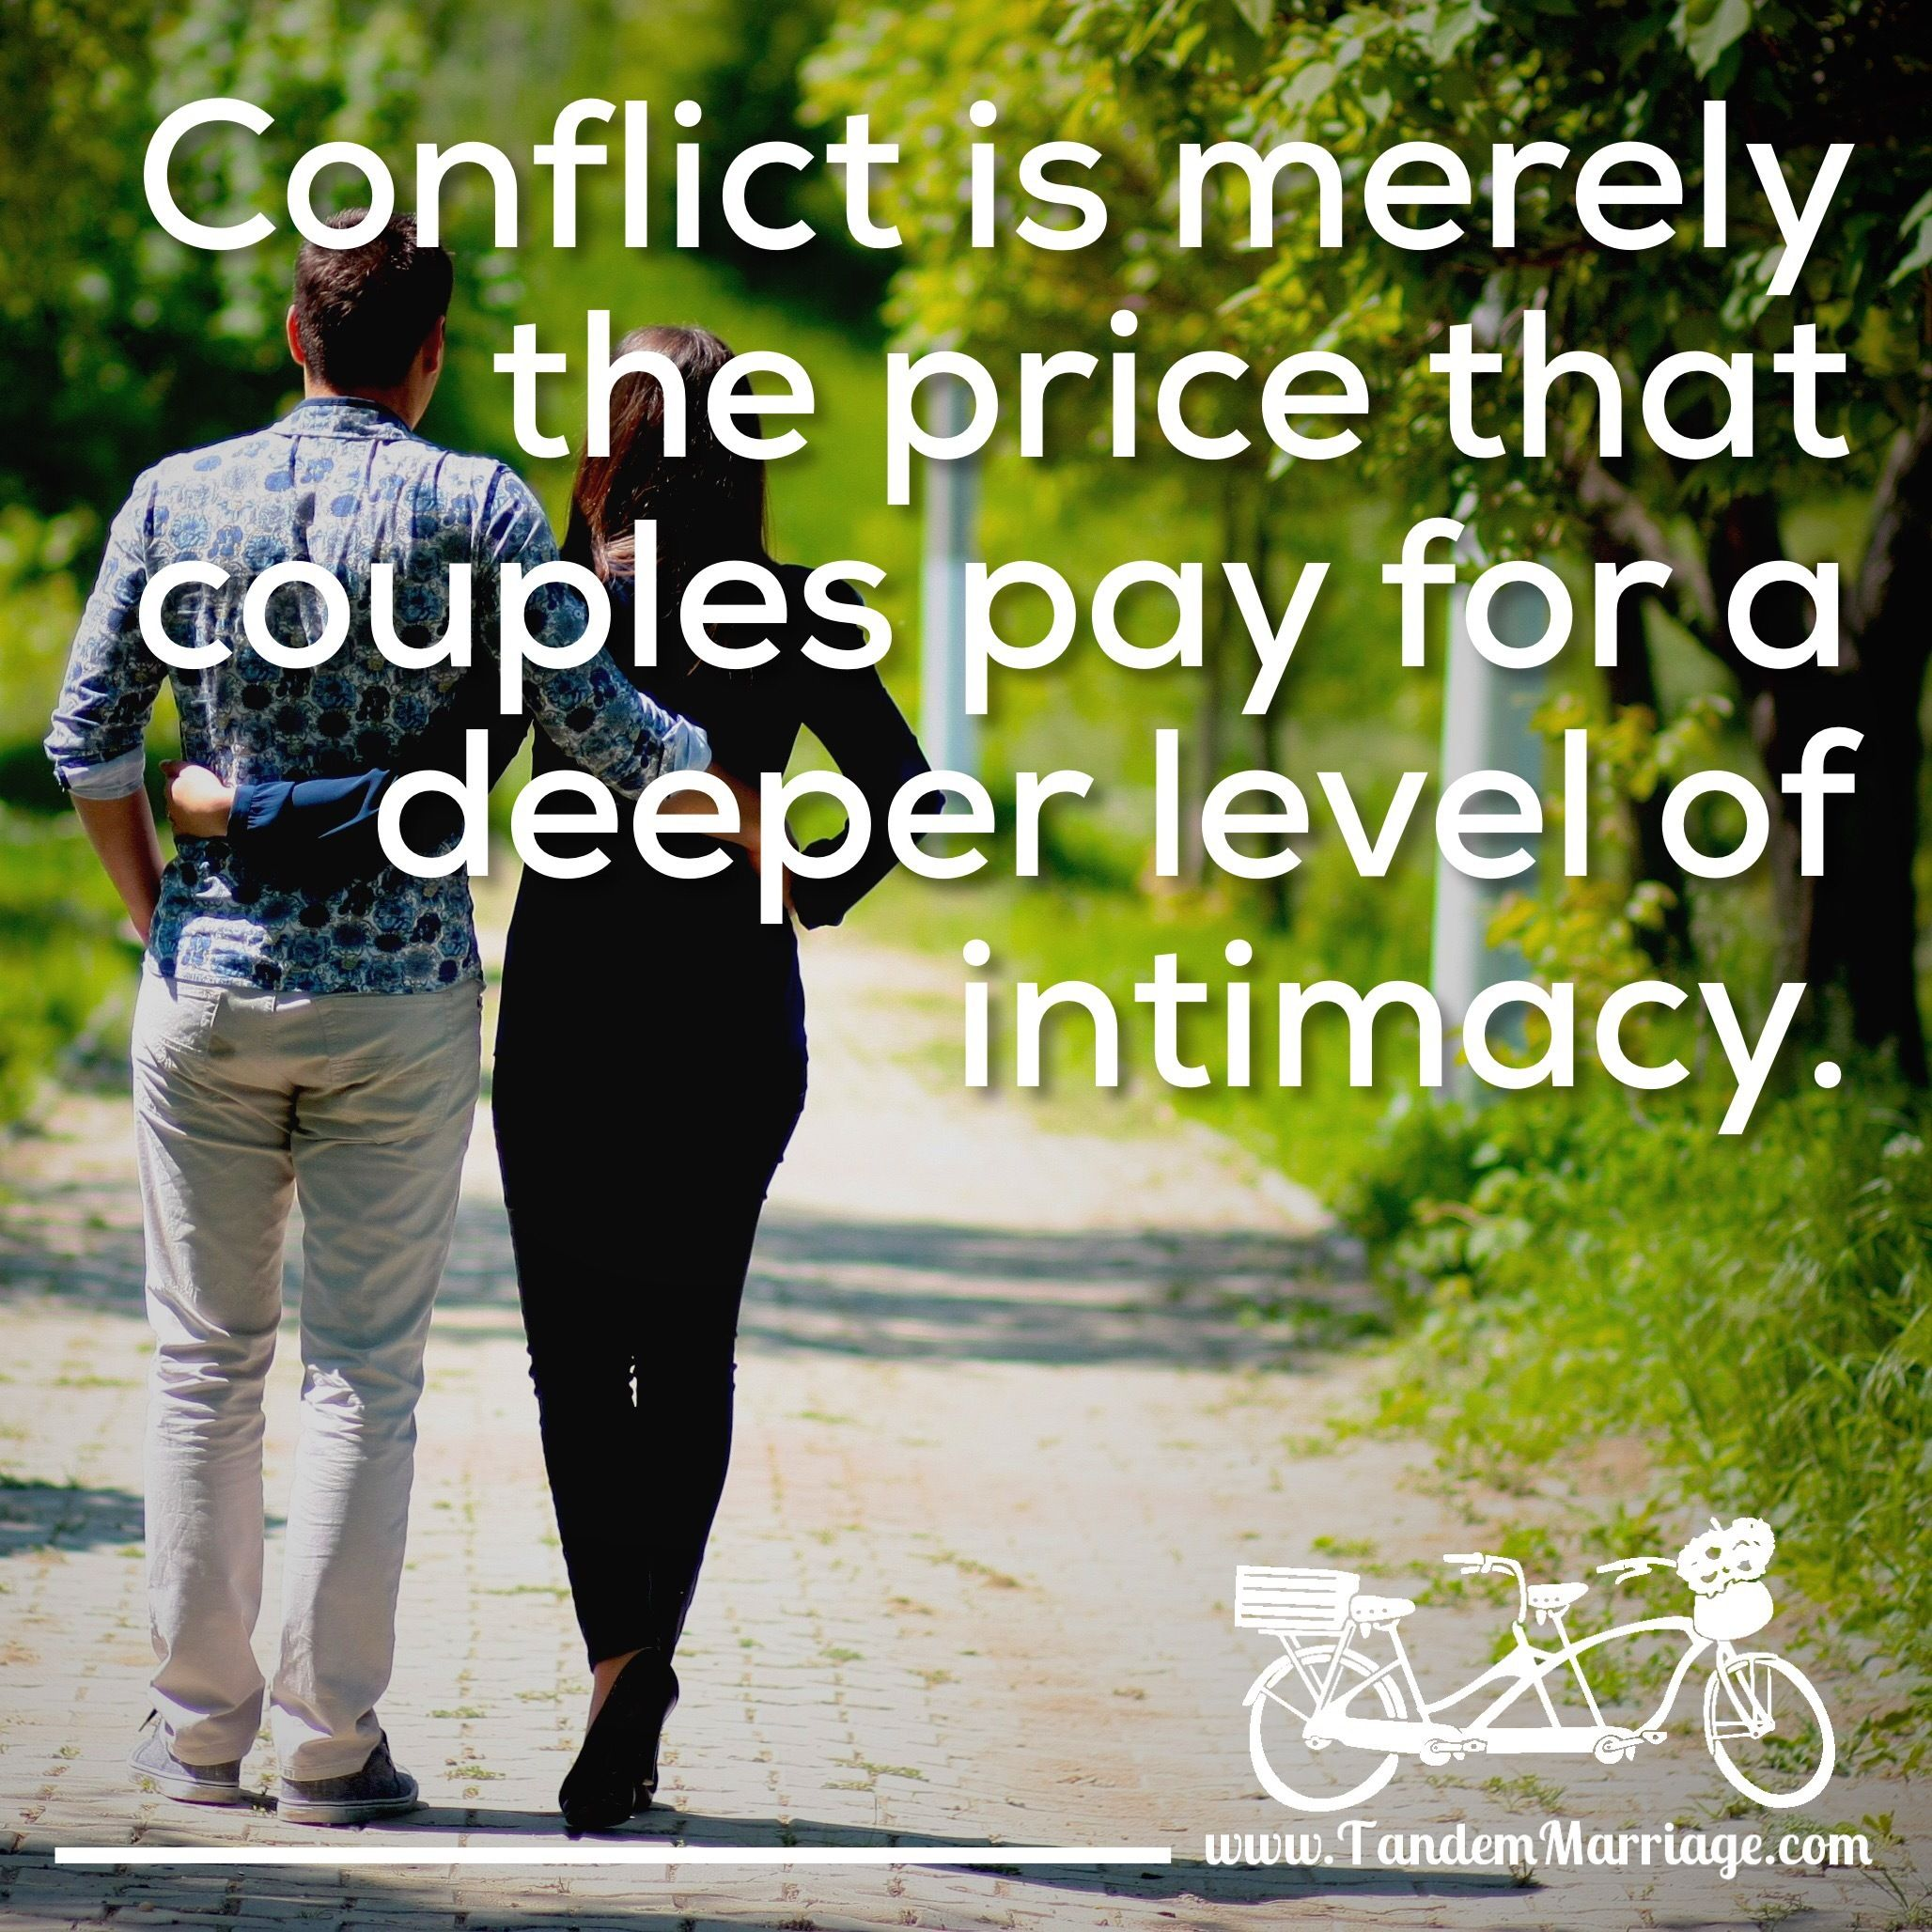 Im Marriage Good Conflict Resolution Skills Are A Must